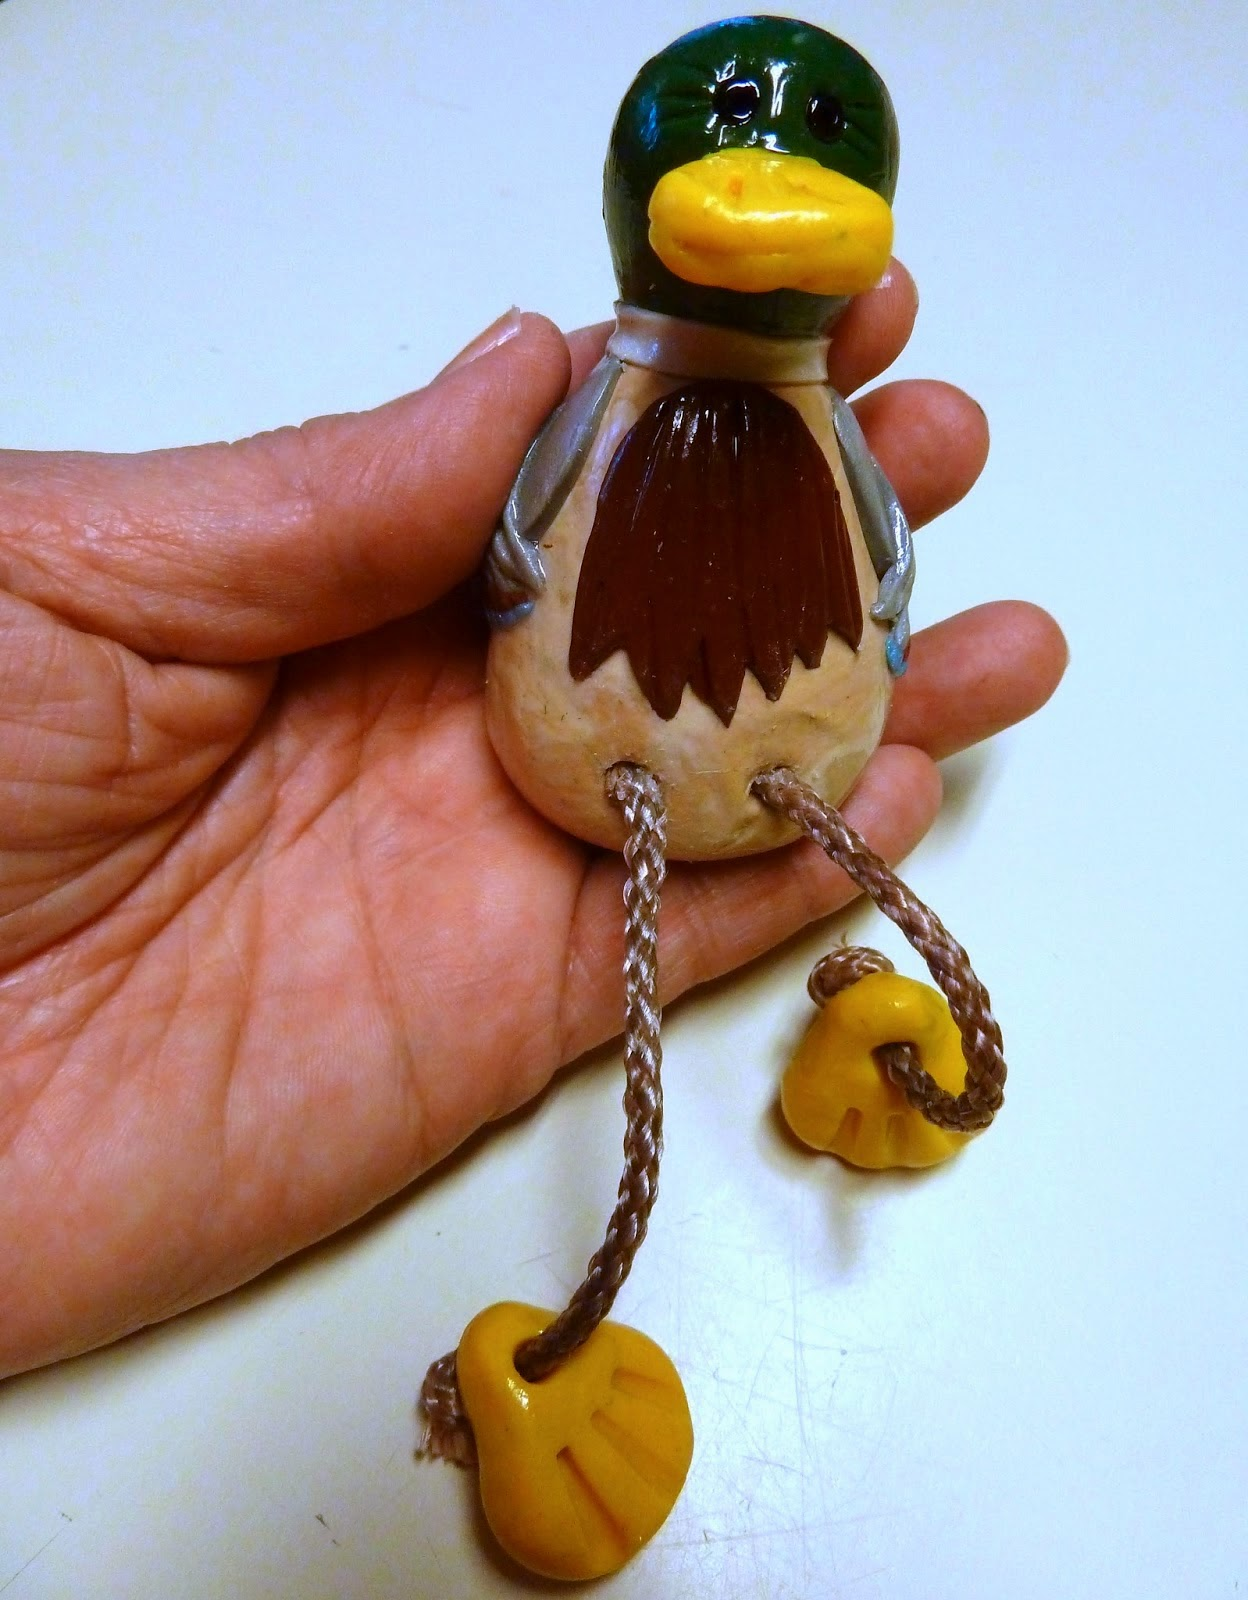 http://www.makeiteasycrafts.com/2014/03/sculpey-oven-baked-clay-sitting-duck.html